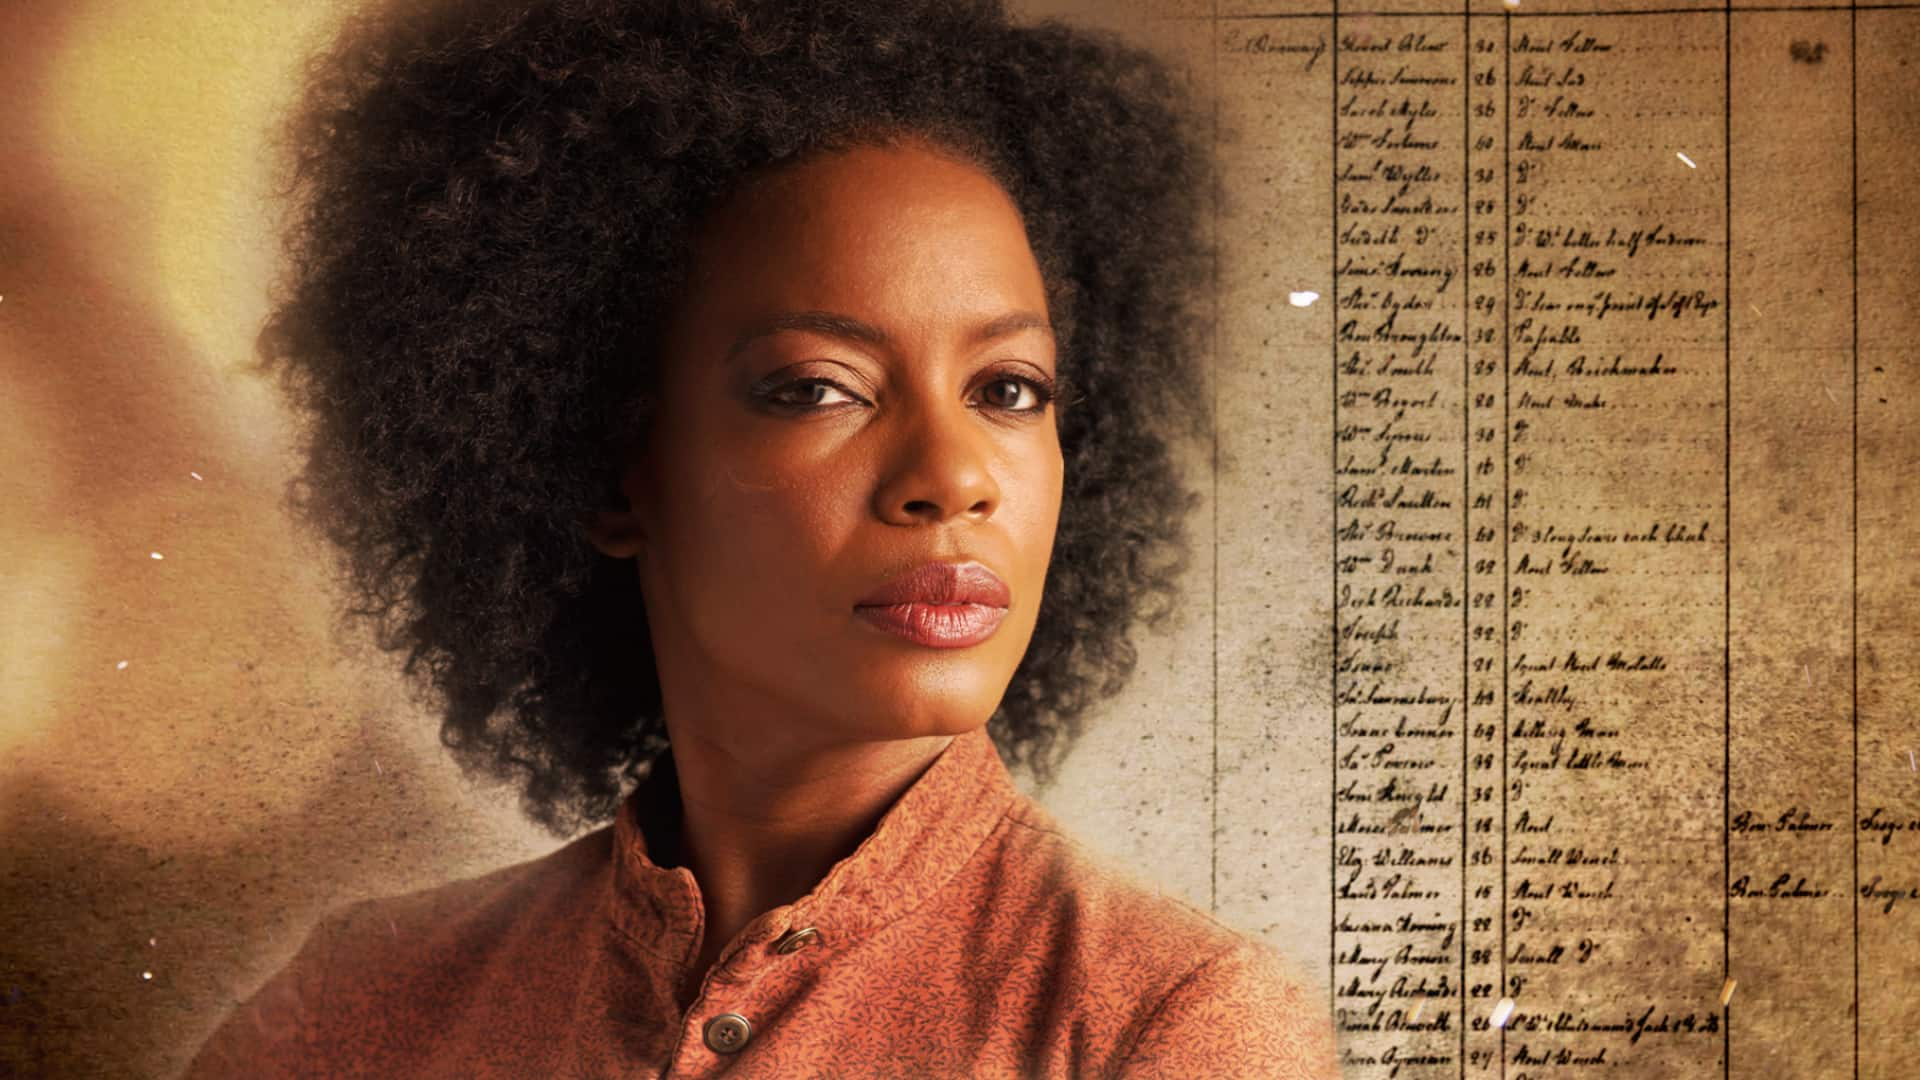 Portraits: Meet the characters from The Book of Negroes